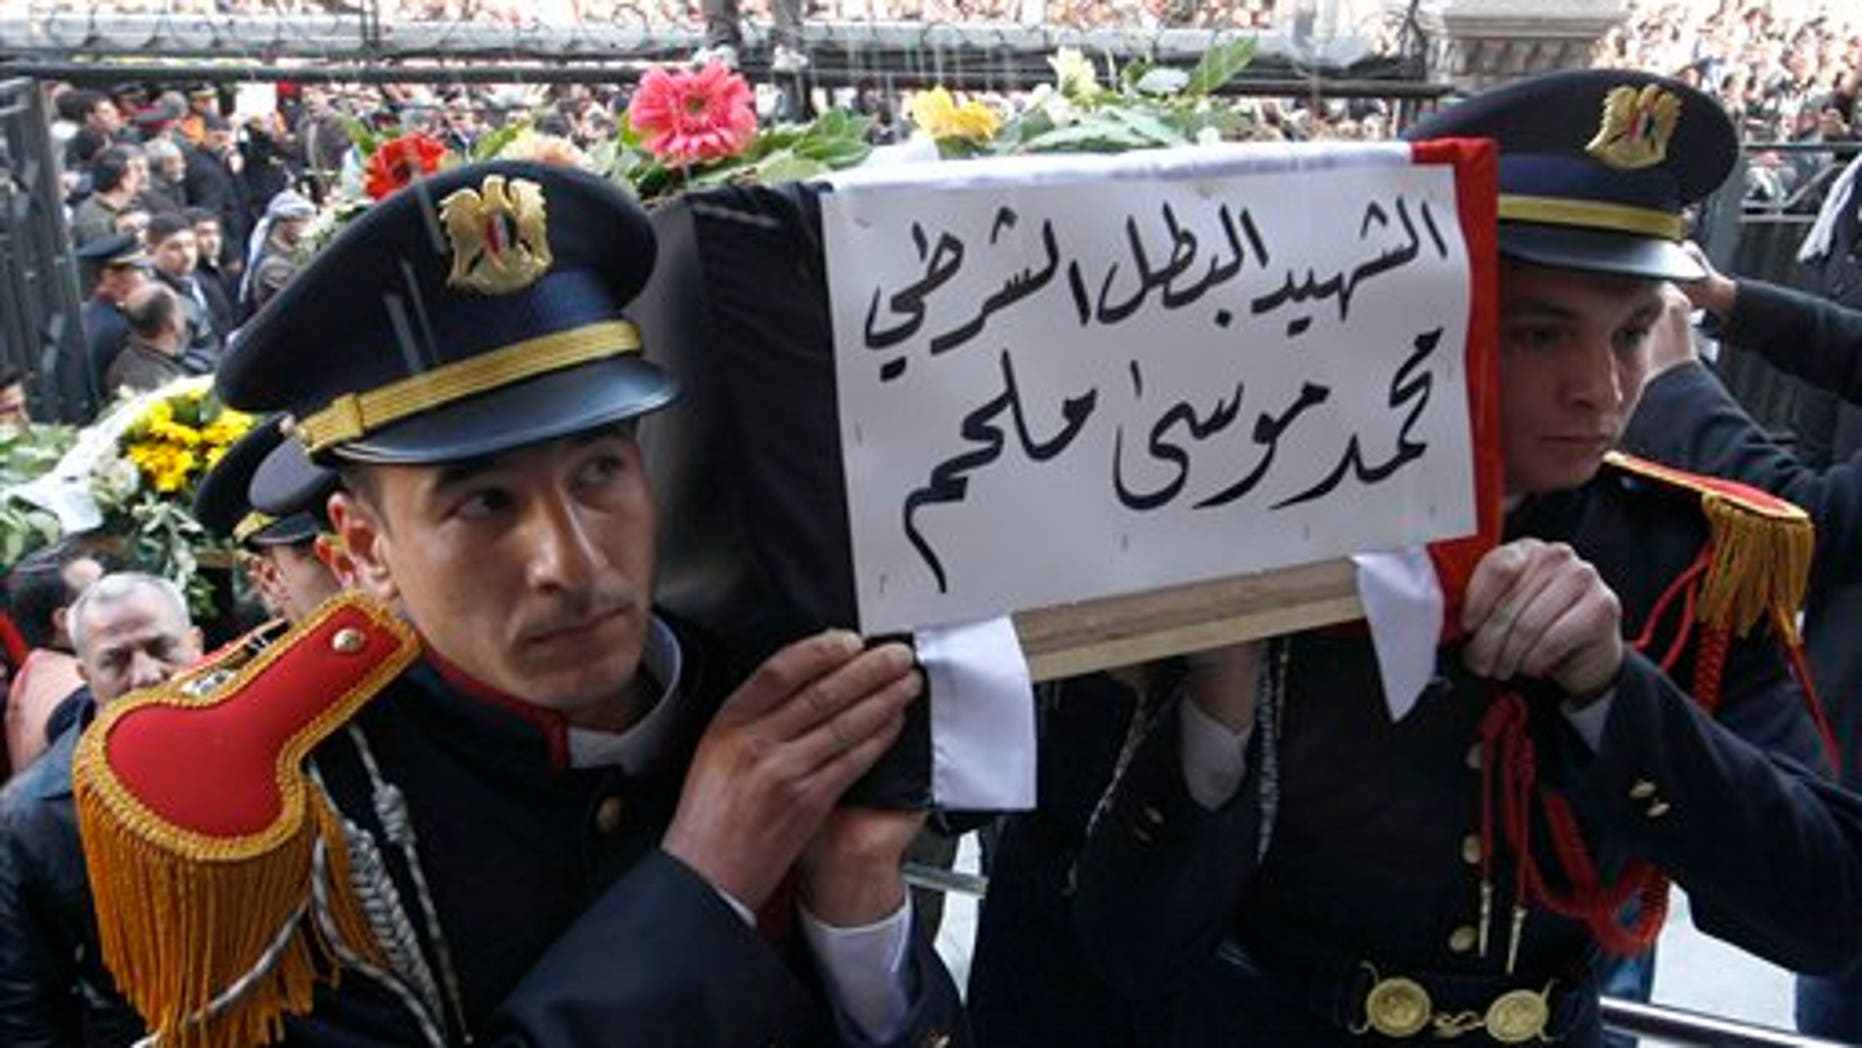 Jan. 7: Syrian police honor guards carry the coffin of one of 11 Syrian police officers who were killed in an explosion in the Midan neighborhood on Friday, during a mass funeral procession at Al-Hassan mosque, in Damascus, Syria.